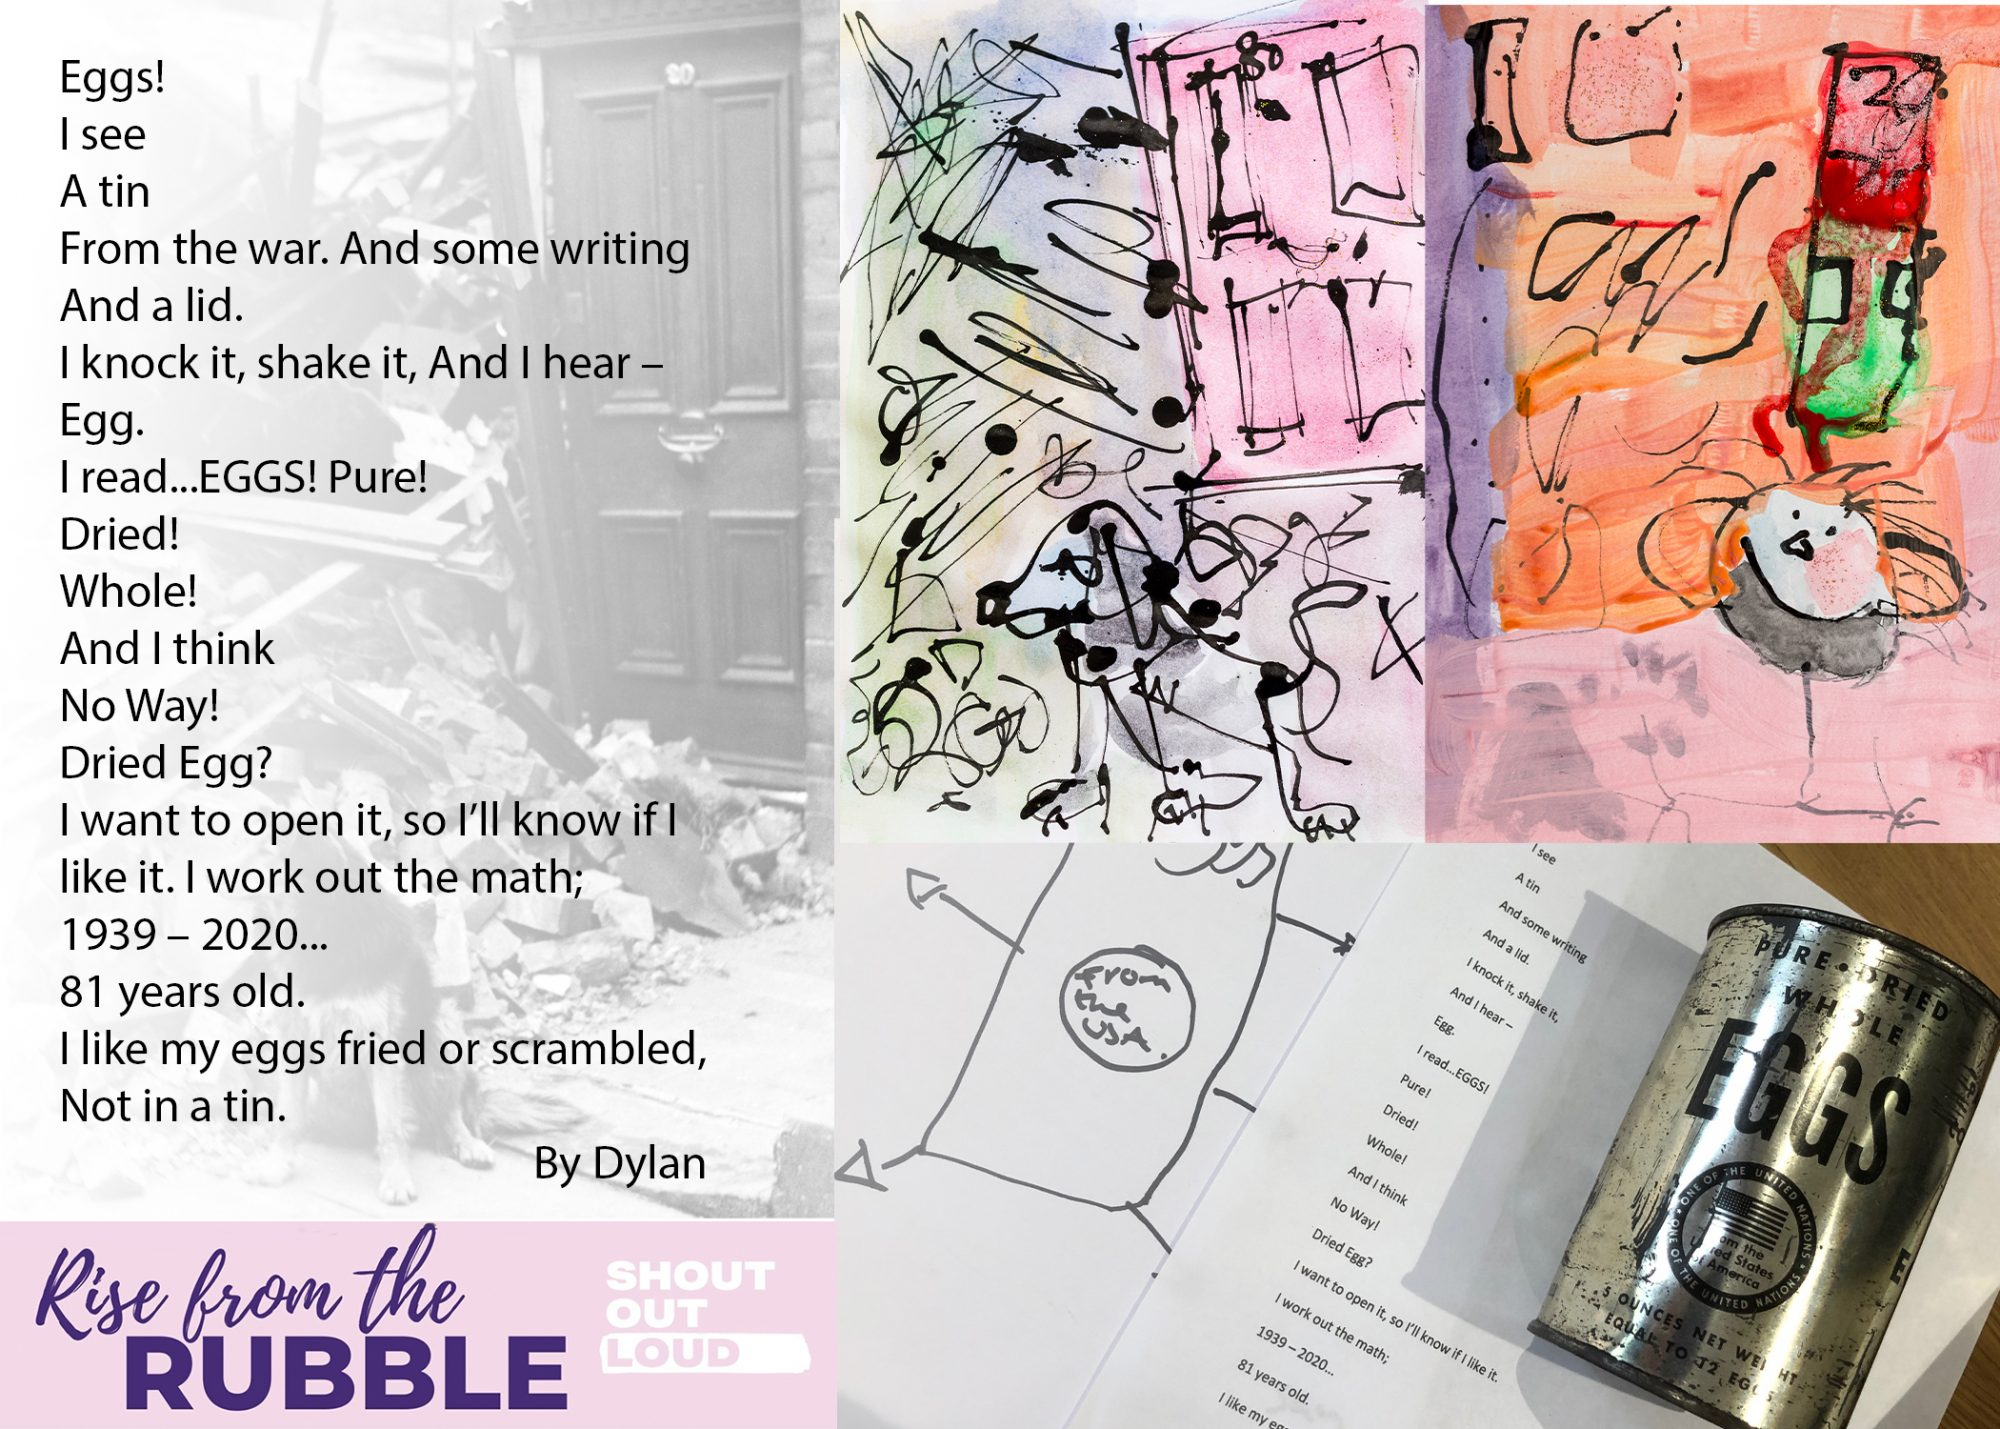 Poem written by Dylan, who participated in the Rise from the Rubble project